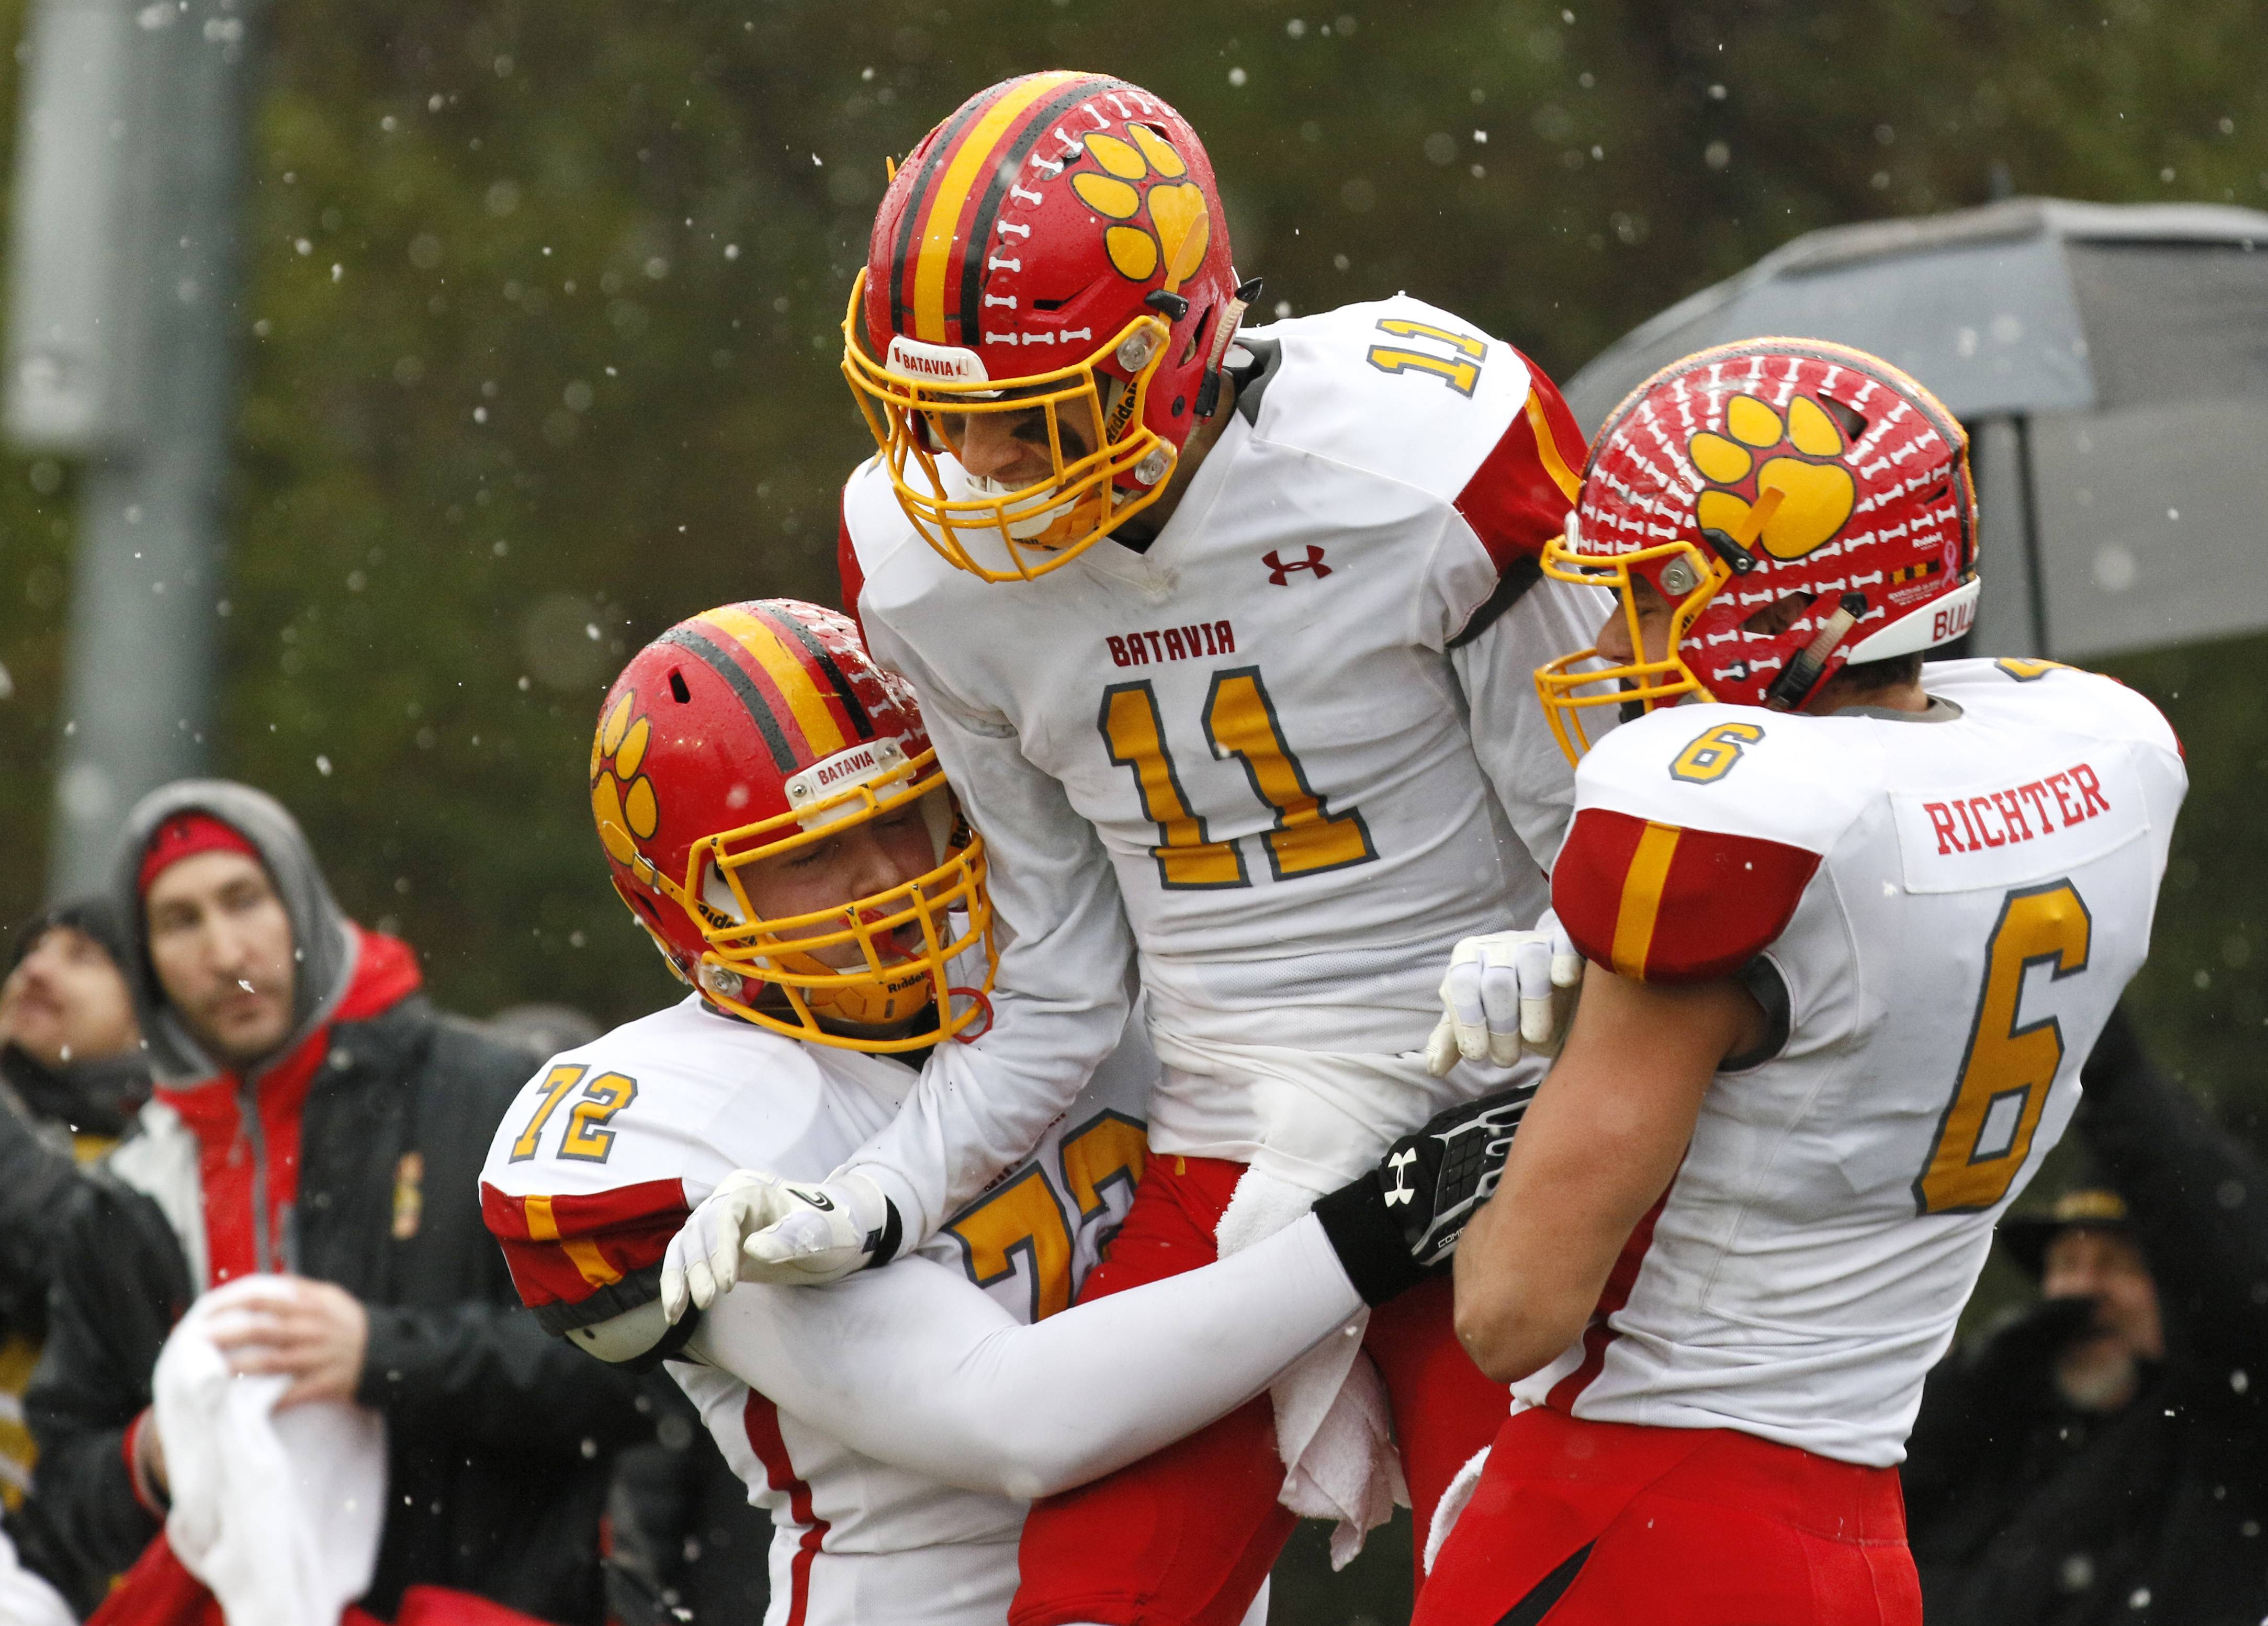 Batavia's Eric Peterson (11) is hoisted into the air by Evan Holden (72) and Collin Richter (6) after scoring his second touchdown during a 23-13 win over Benet Academy in the Class 7A football semifinal game in Lisle.